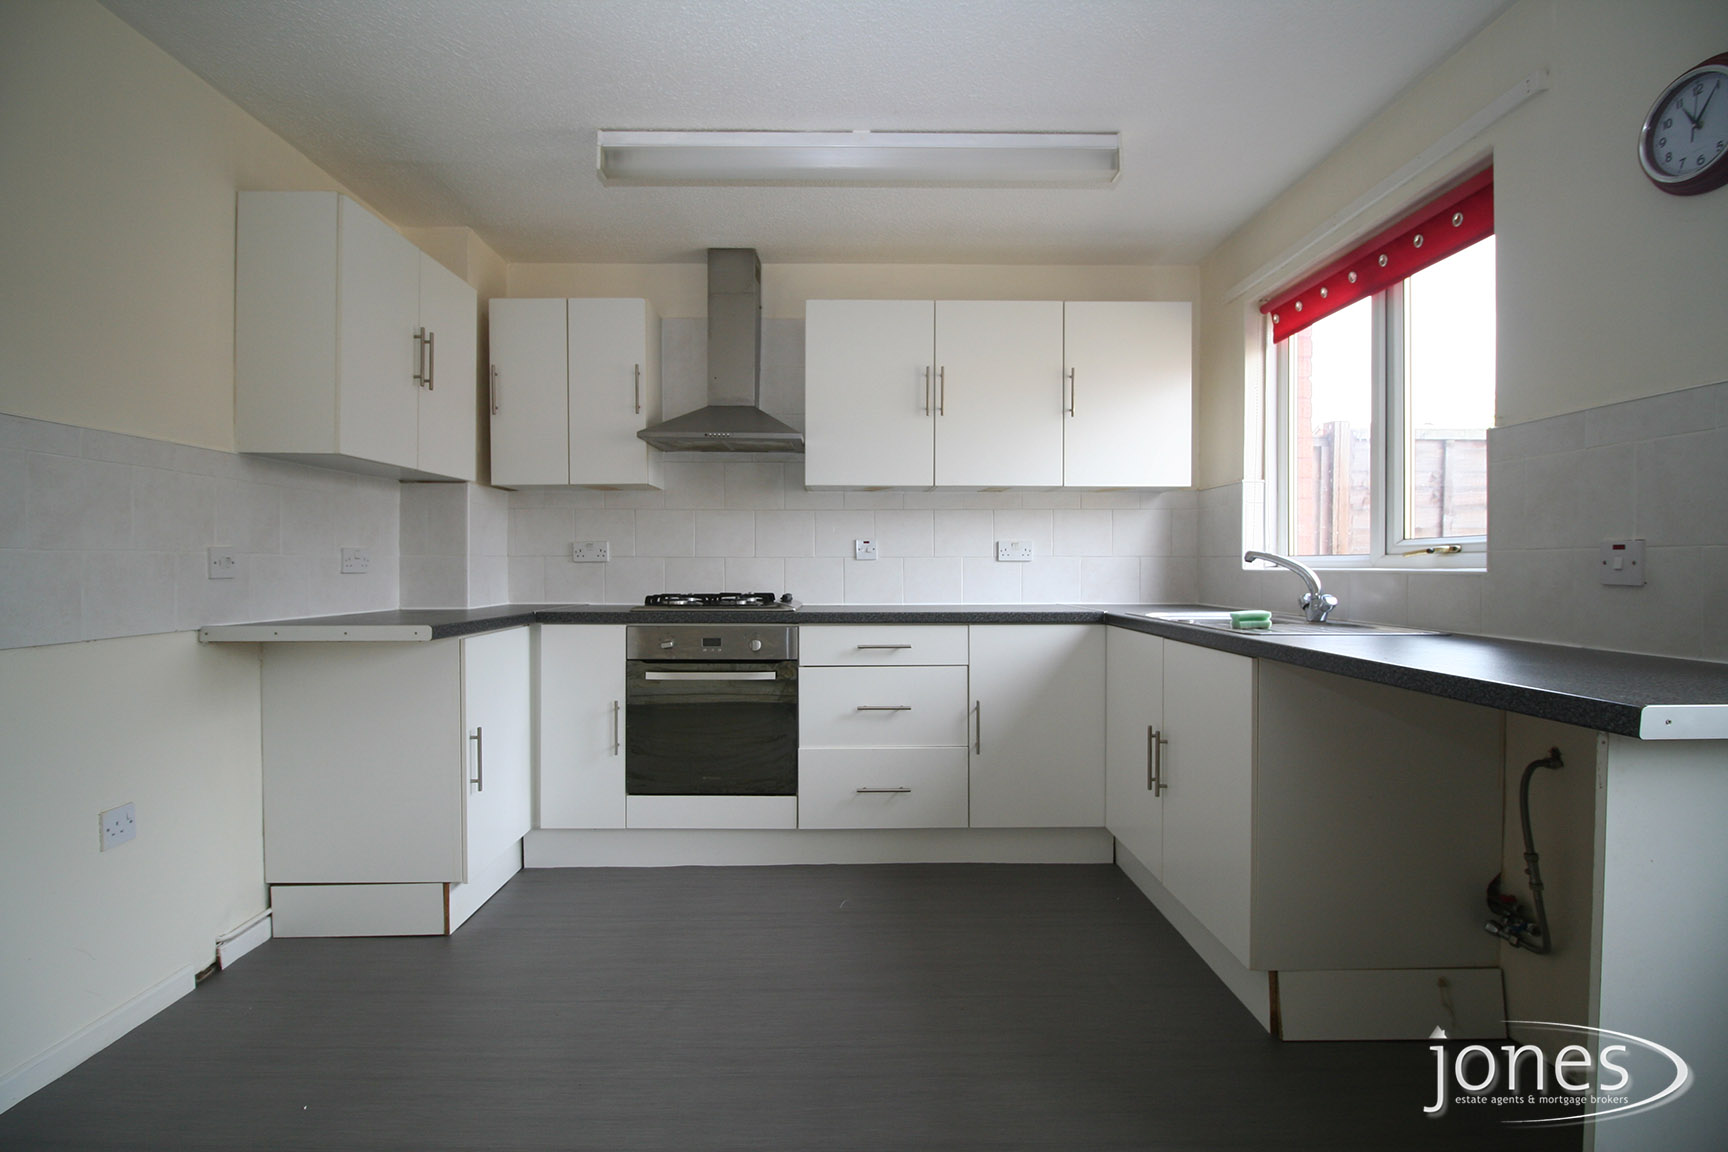 Home for Sale Let - Photo 03 Francis Walk,  Thornaby, TS17 6DL